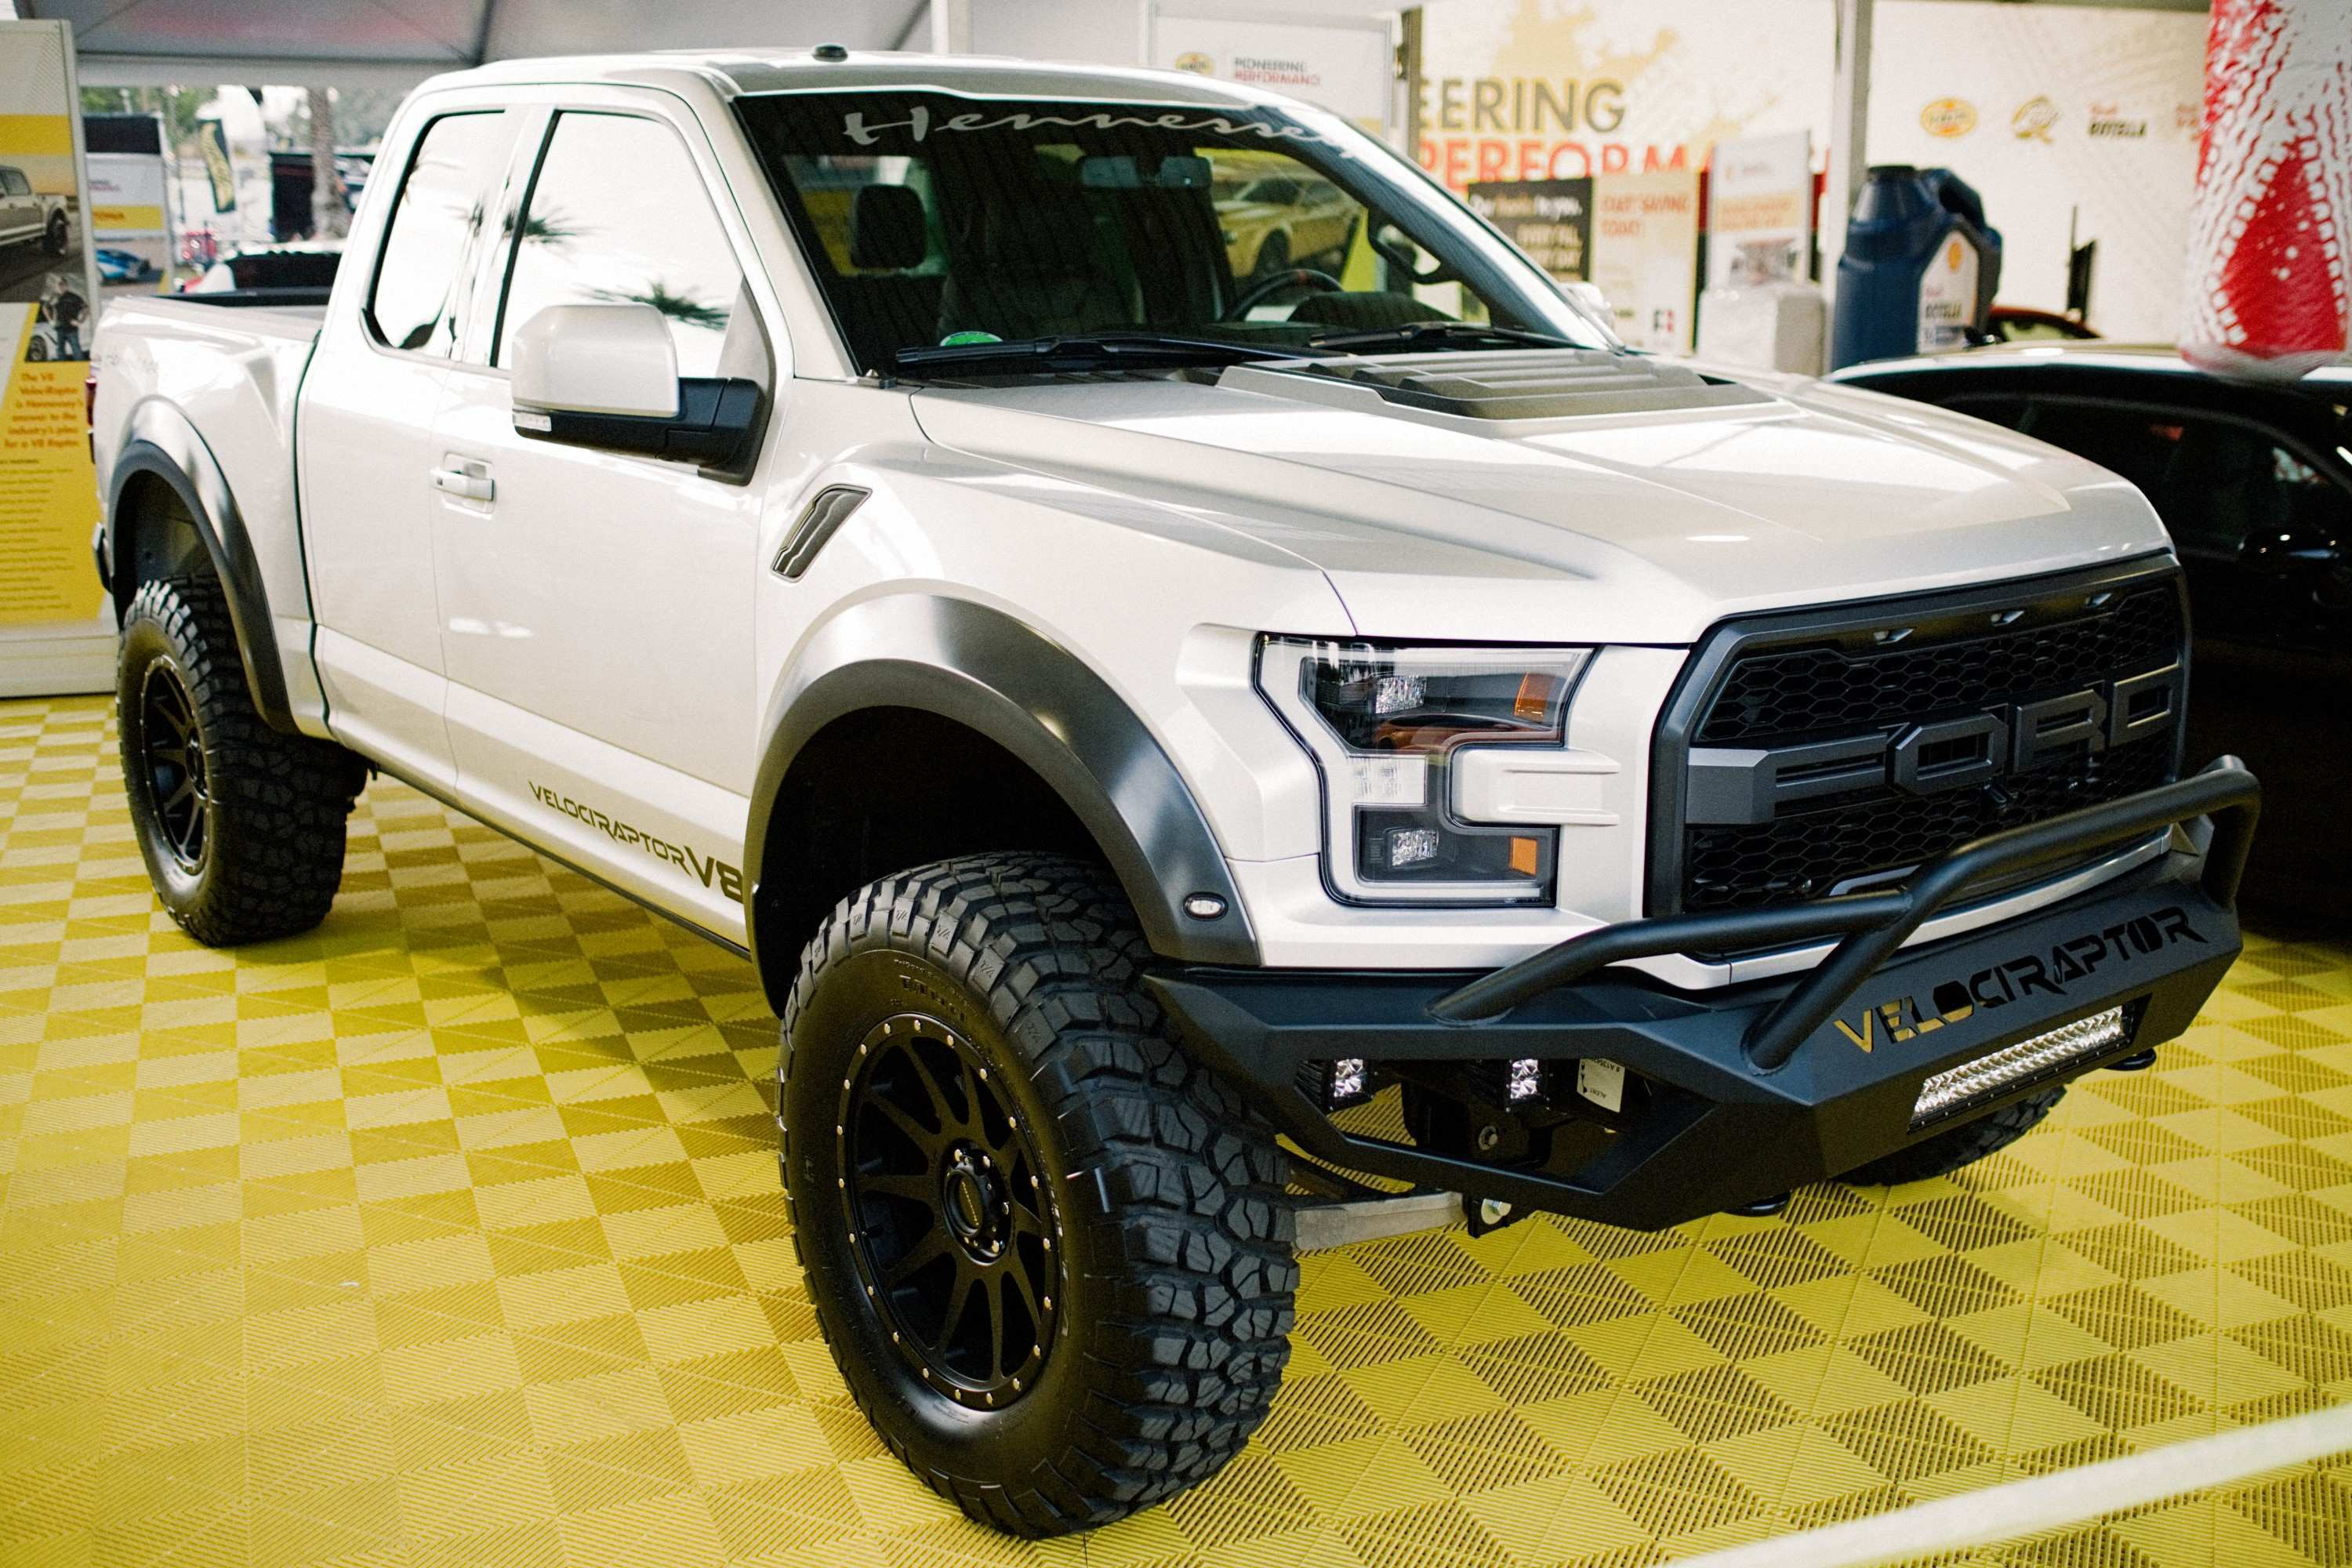 88 Gallery of The 2019 Ford Raptor V8 Exterior And Interior Review Wallpaper for The 2019 Ford Raptor V8 Exterior And Interior Review